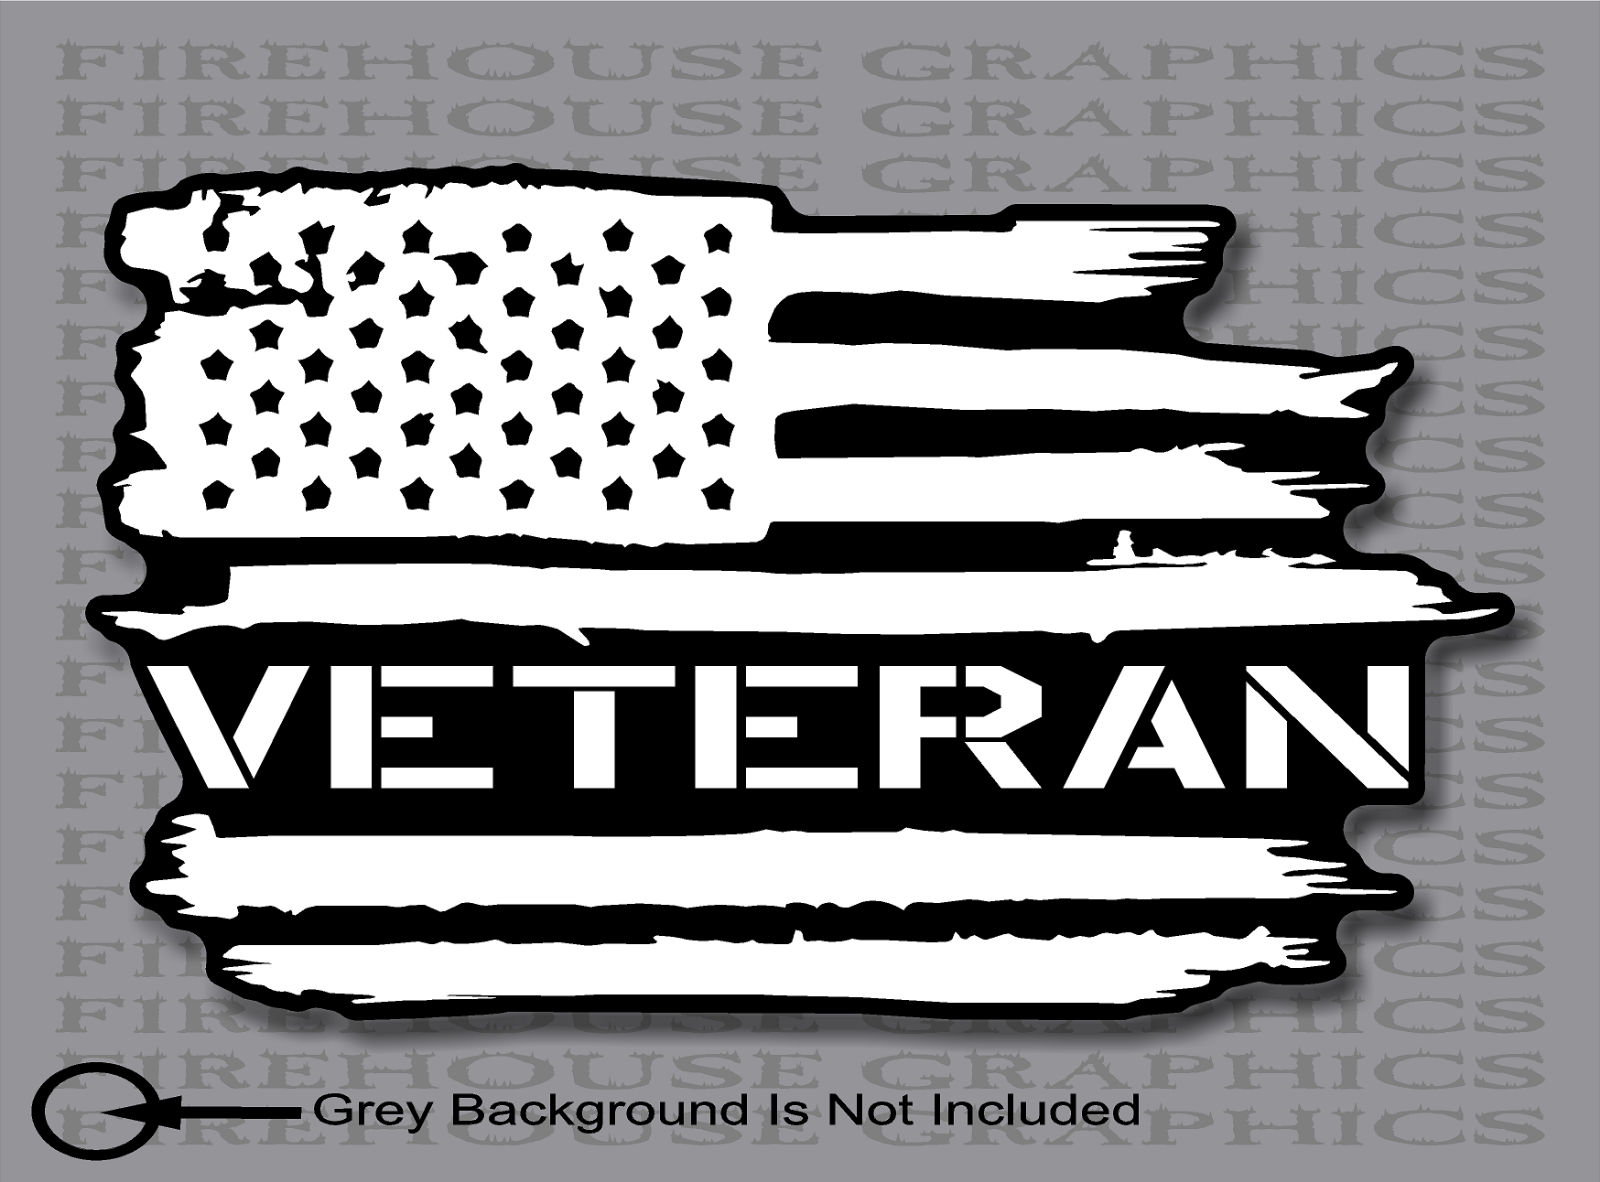 Disabled amirican vetreans black and white clipart jpg transparent stock Details about US Veteran American flag Army Navy Marines Air Force vinyl  sticker decal jpg transparent stock